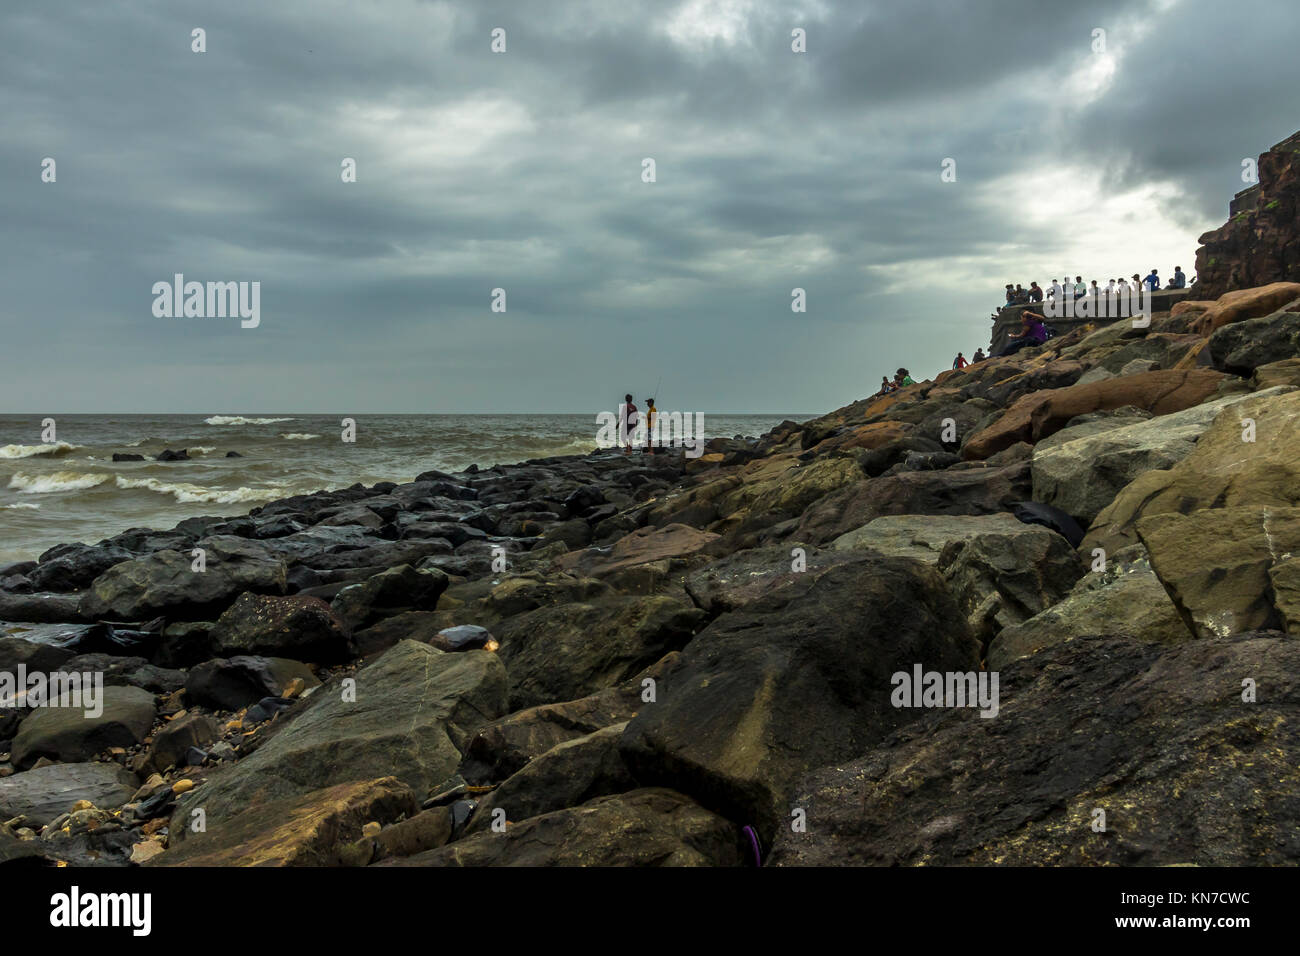 Sea view from Bandra Bandstand Stock Photo